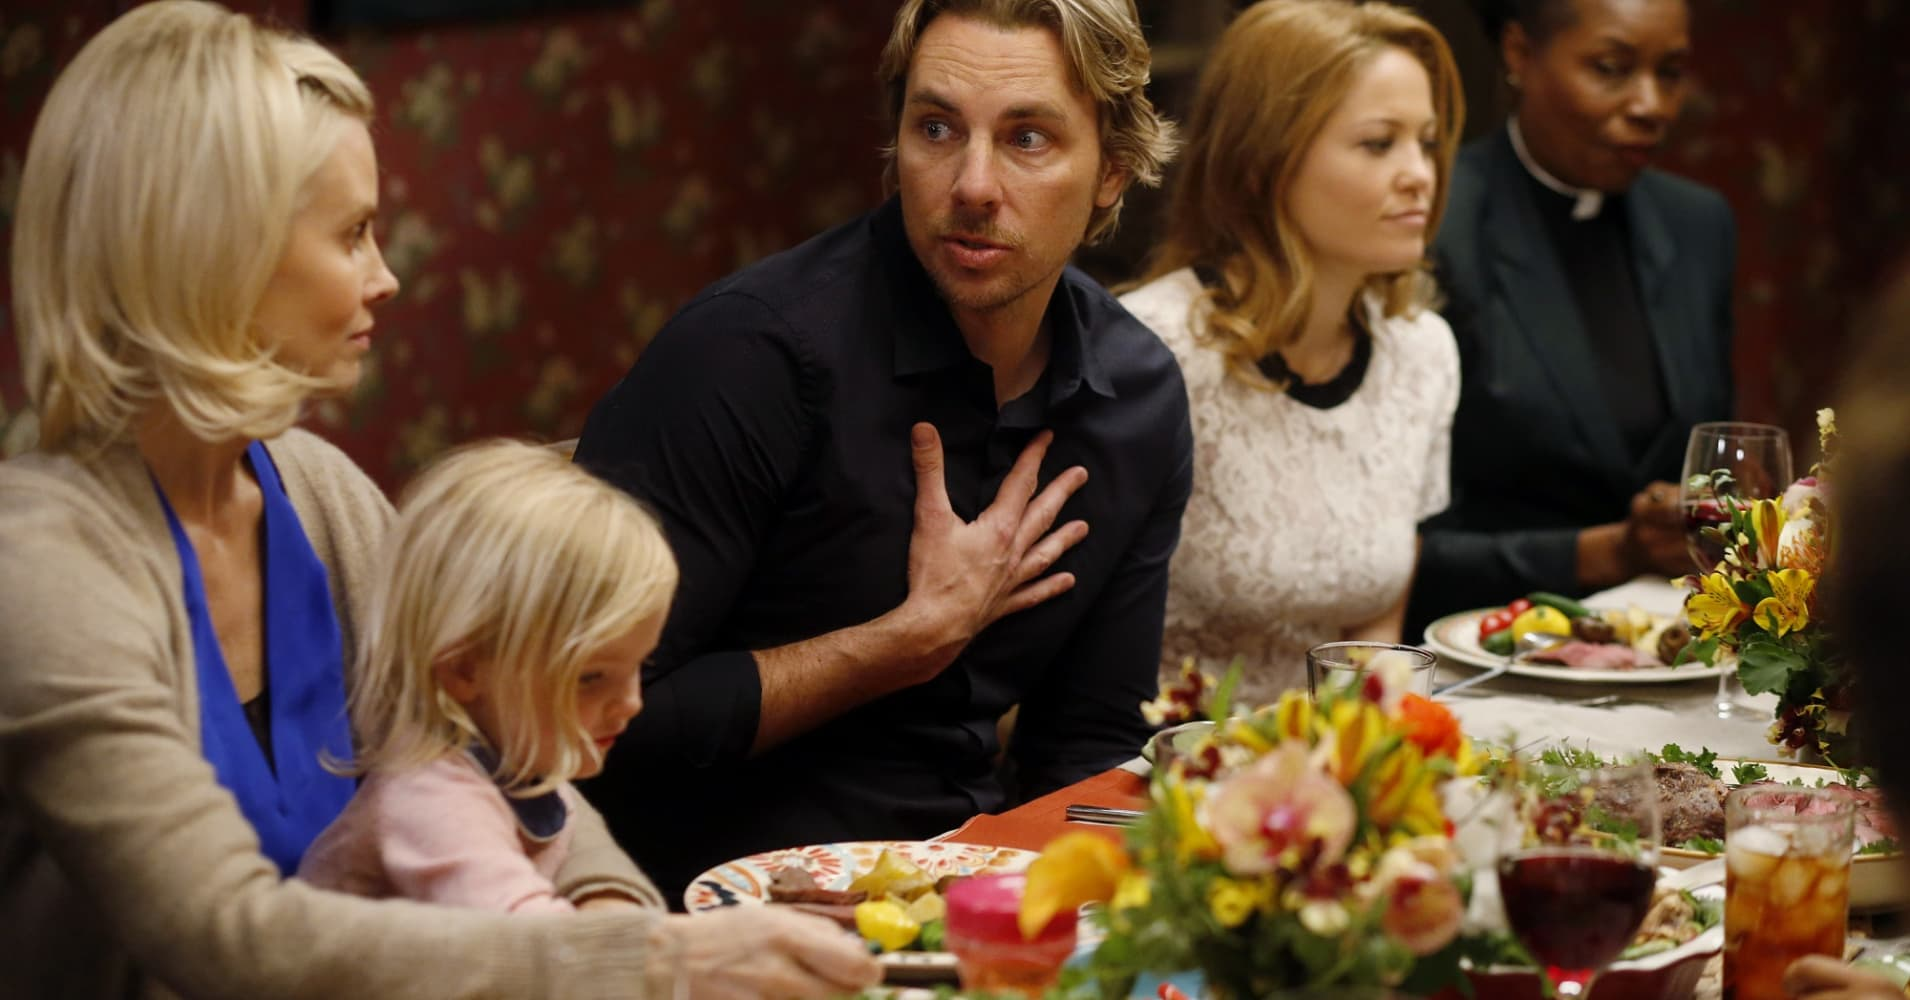 The Braverman family on NBC's 'Parenthood'